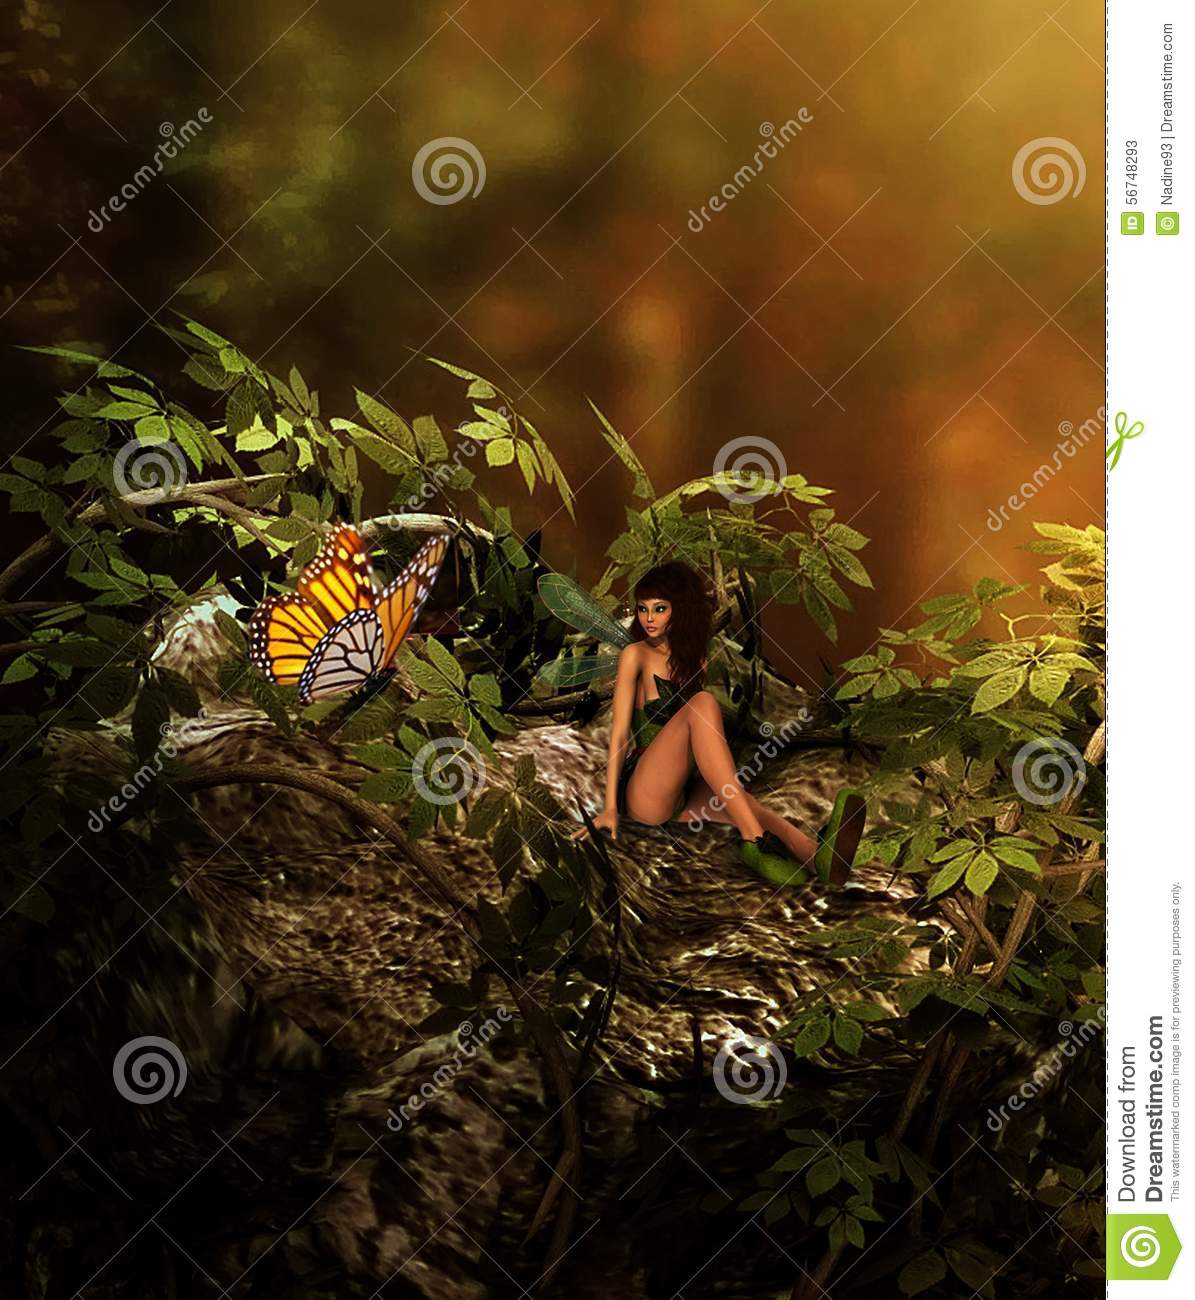 high quality rendered images of a fairy girl talking to a fairy: images small talk